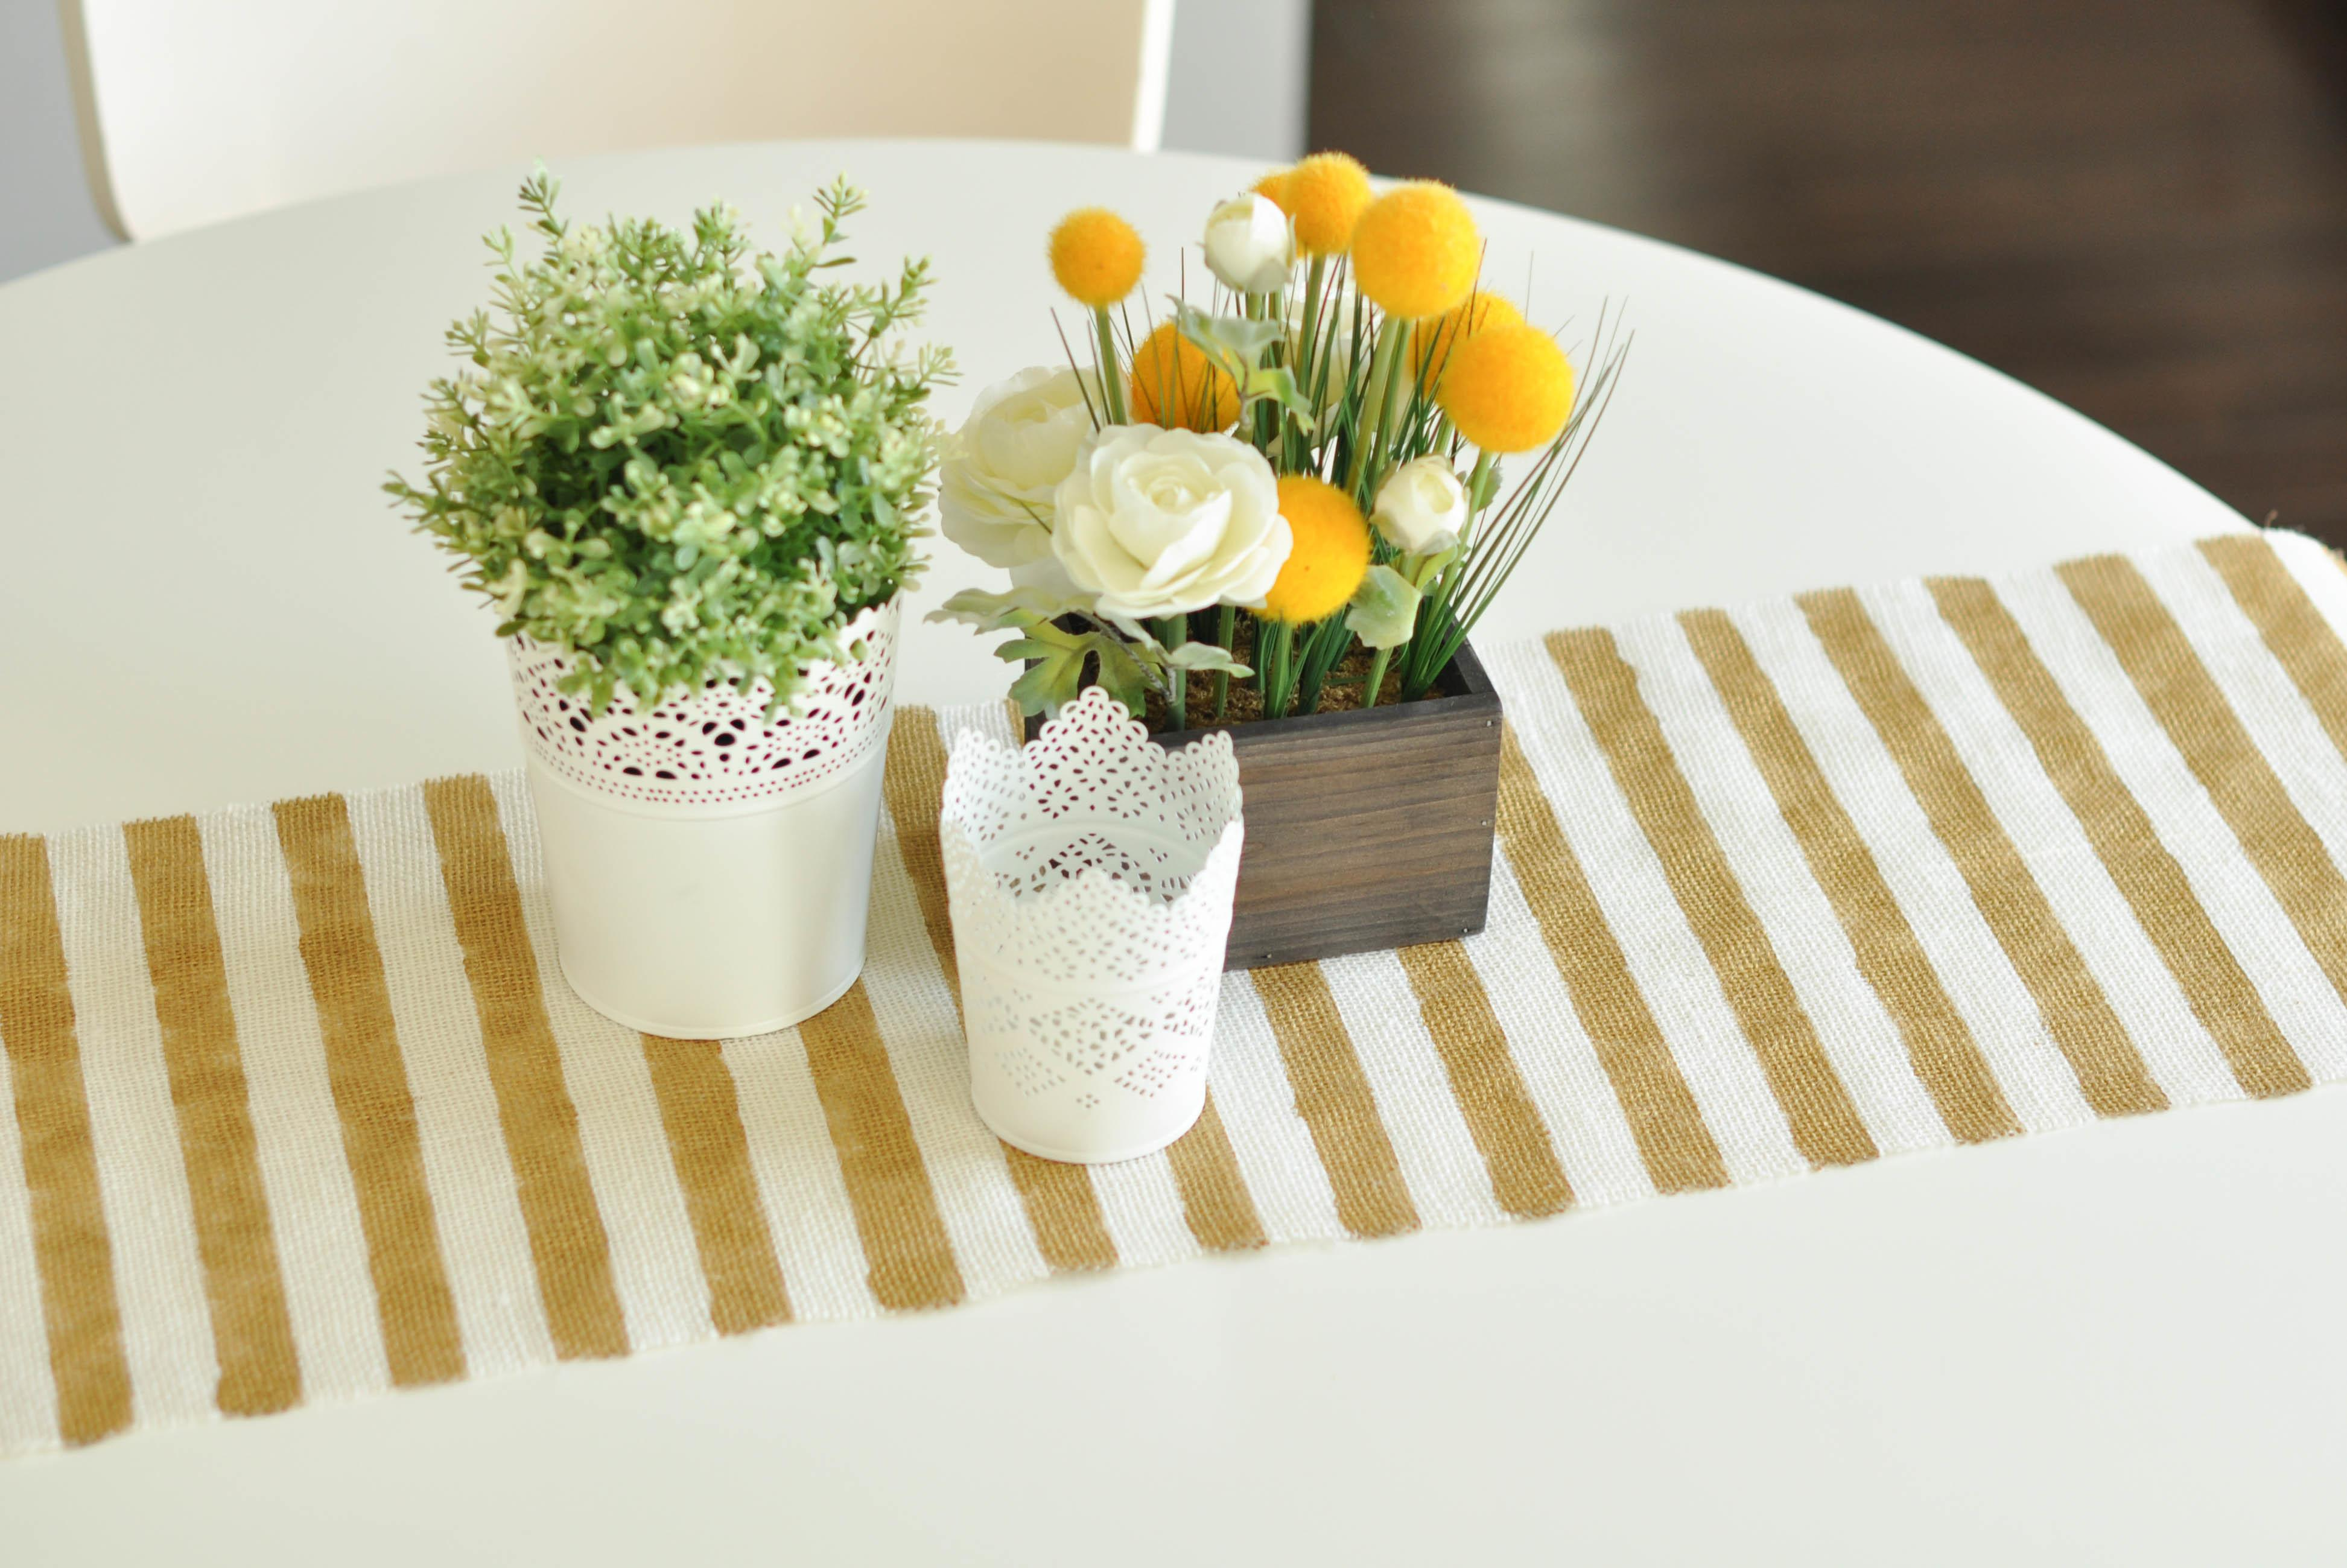 Diy Sew Gold Striped Burlap Table Runner Under